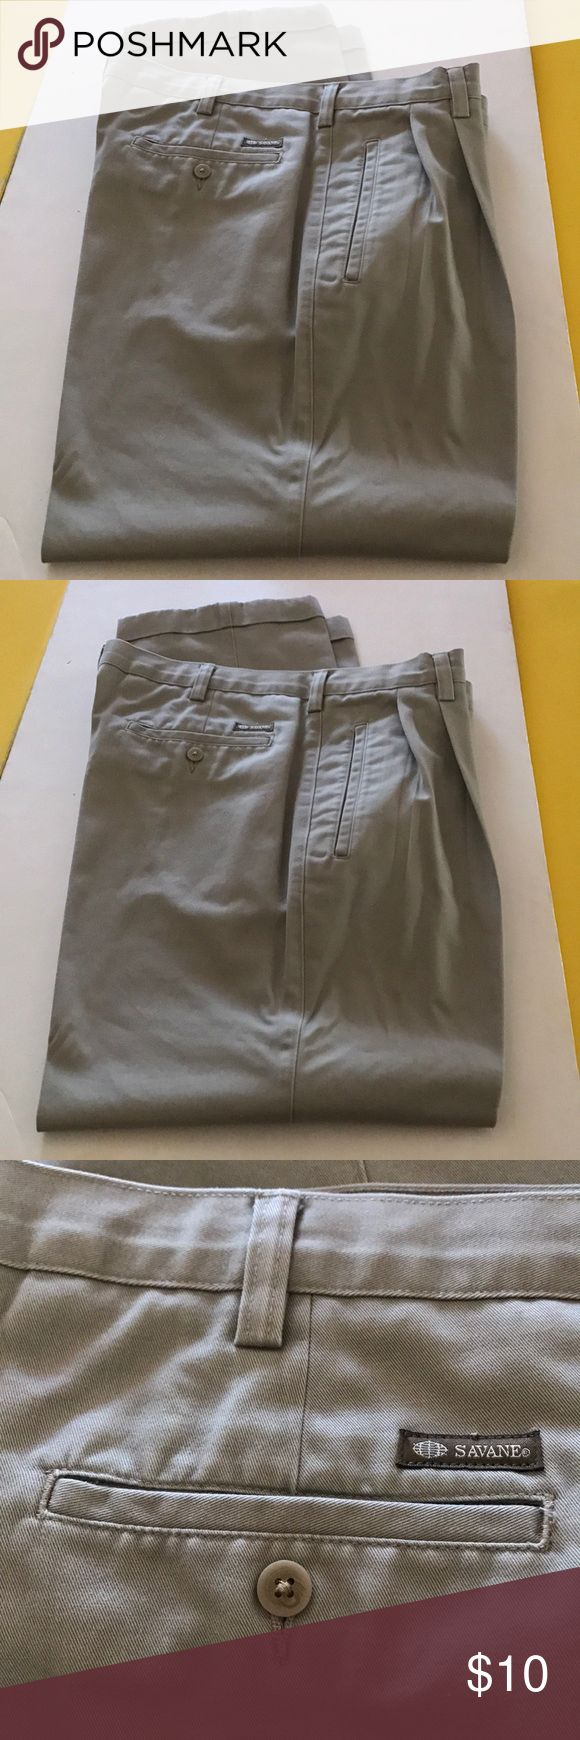 Man's khaki pants 36 x 30 Savane pleated cuffed Man's khaki casual pants. Pleated and cuffed. 36 x 30 size. 100% cotton. Slight fraying on fold of cuff bottoms. Not noticeable if you are not looking for it. Great work pants. Savane Pants Chinos & Khakis